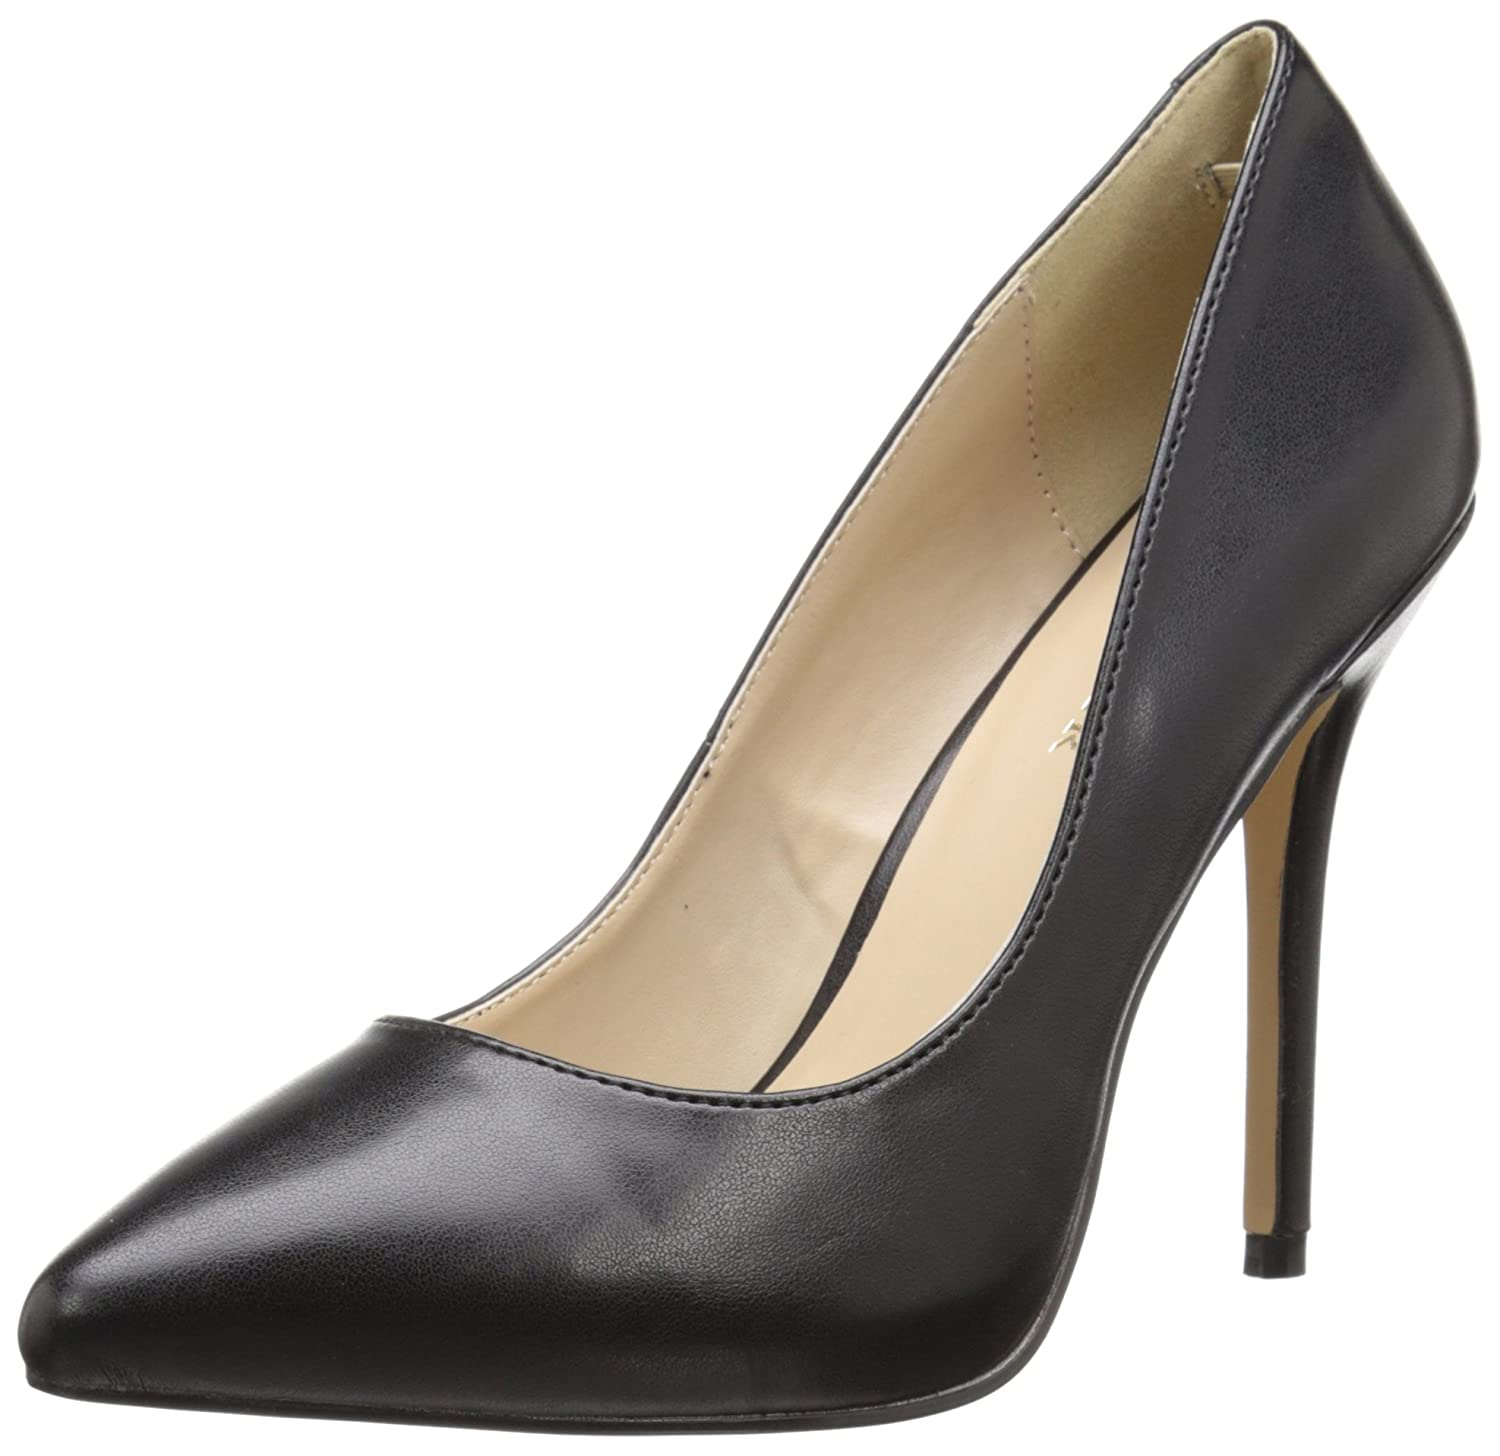 Pleaser Amuse 20 - Tacones Mujer